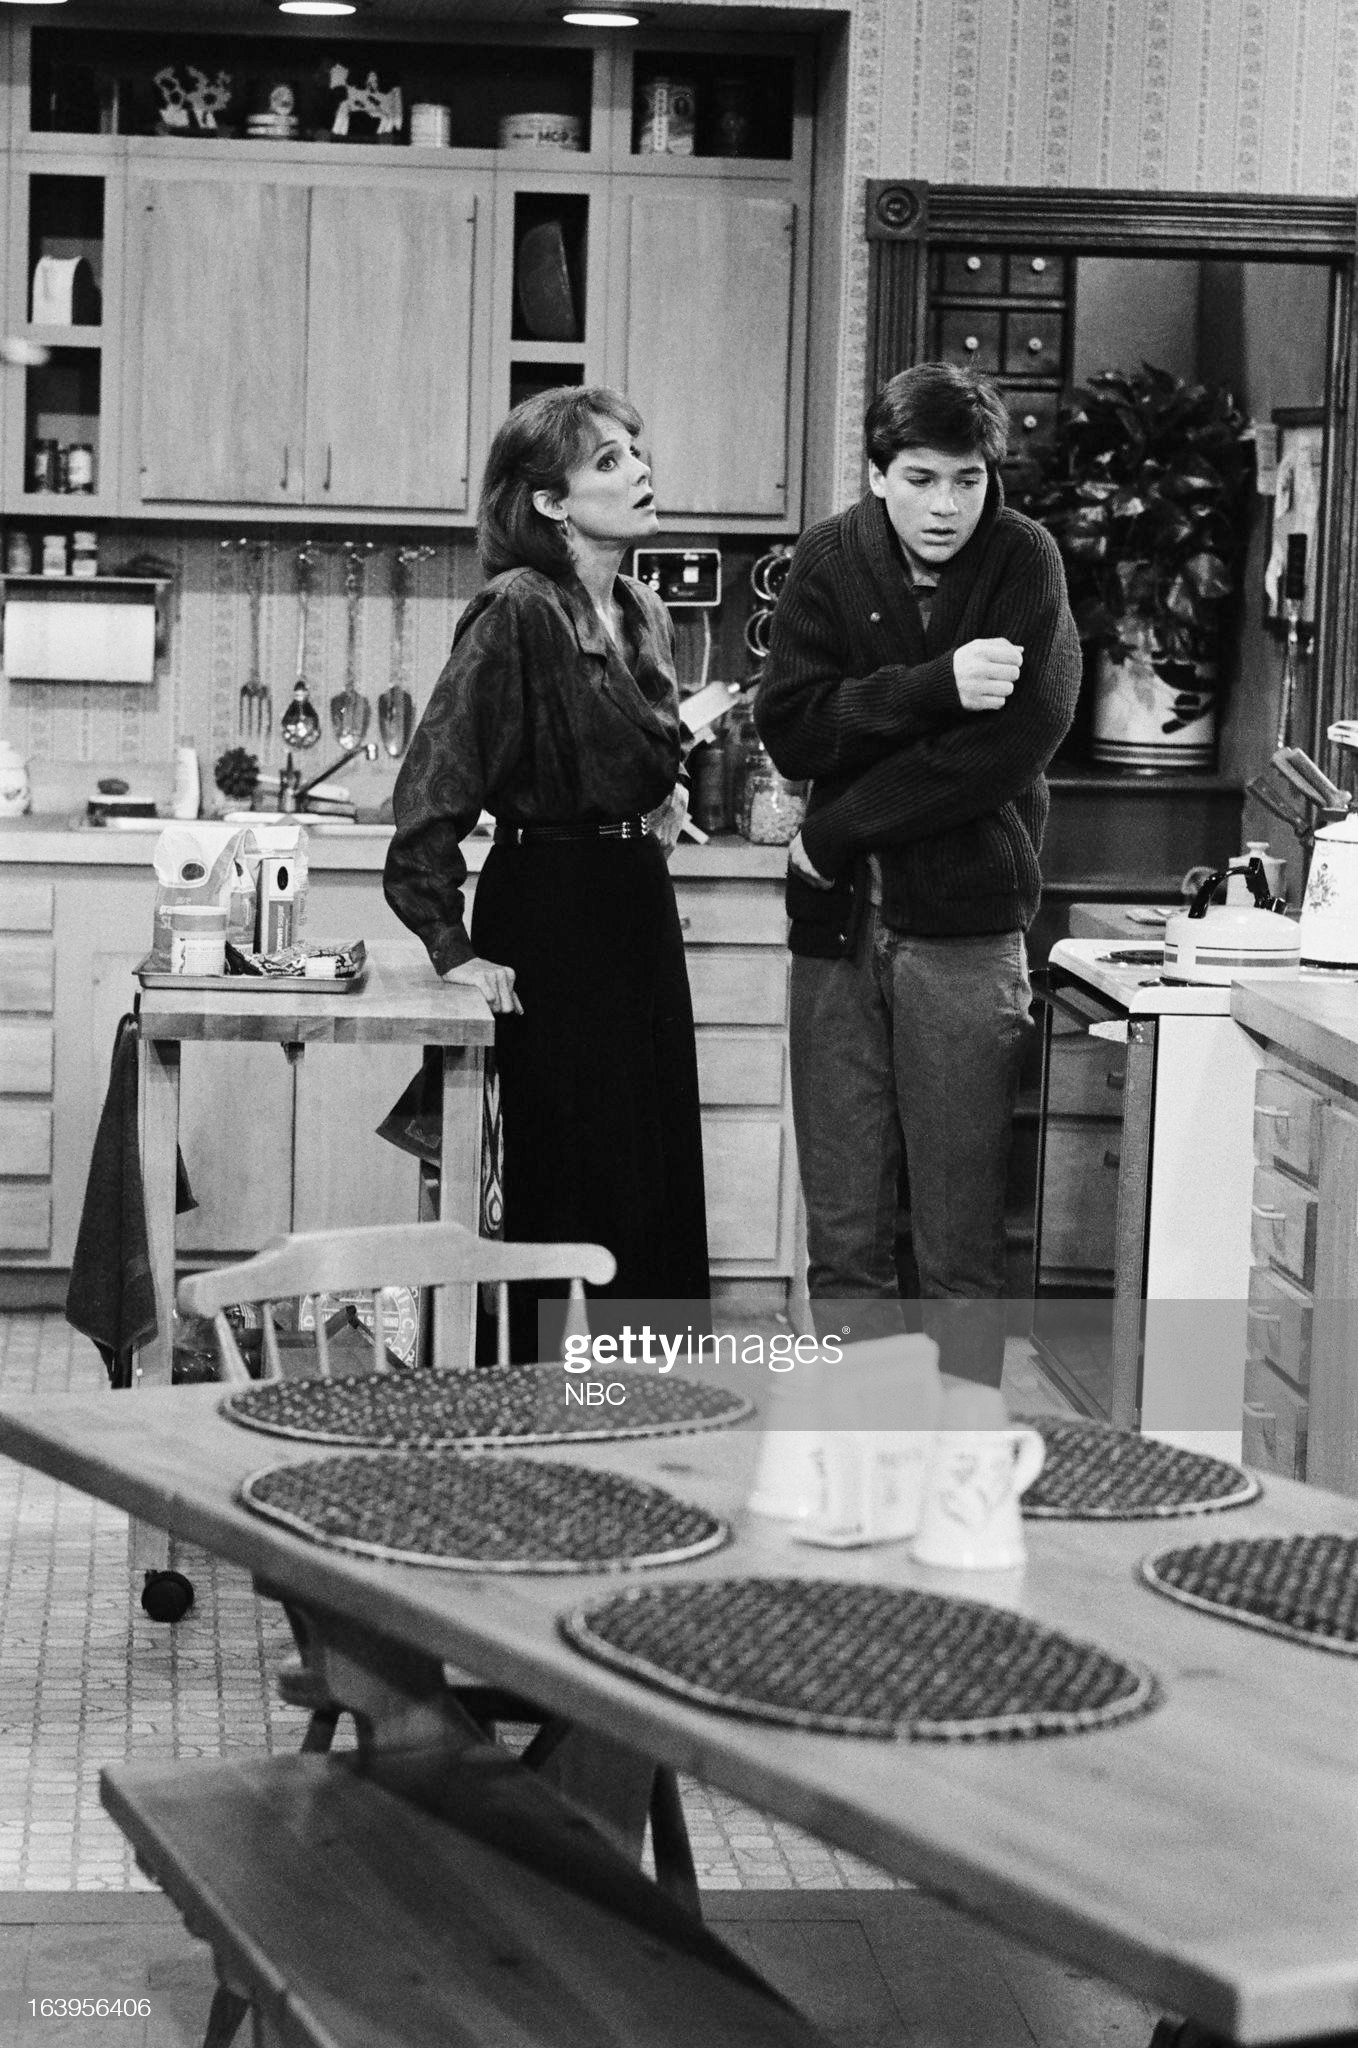 the-six-episode-102-pictured-valerie-harper-as-valerie-hogan-jason-picture-id163956406